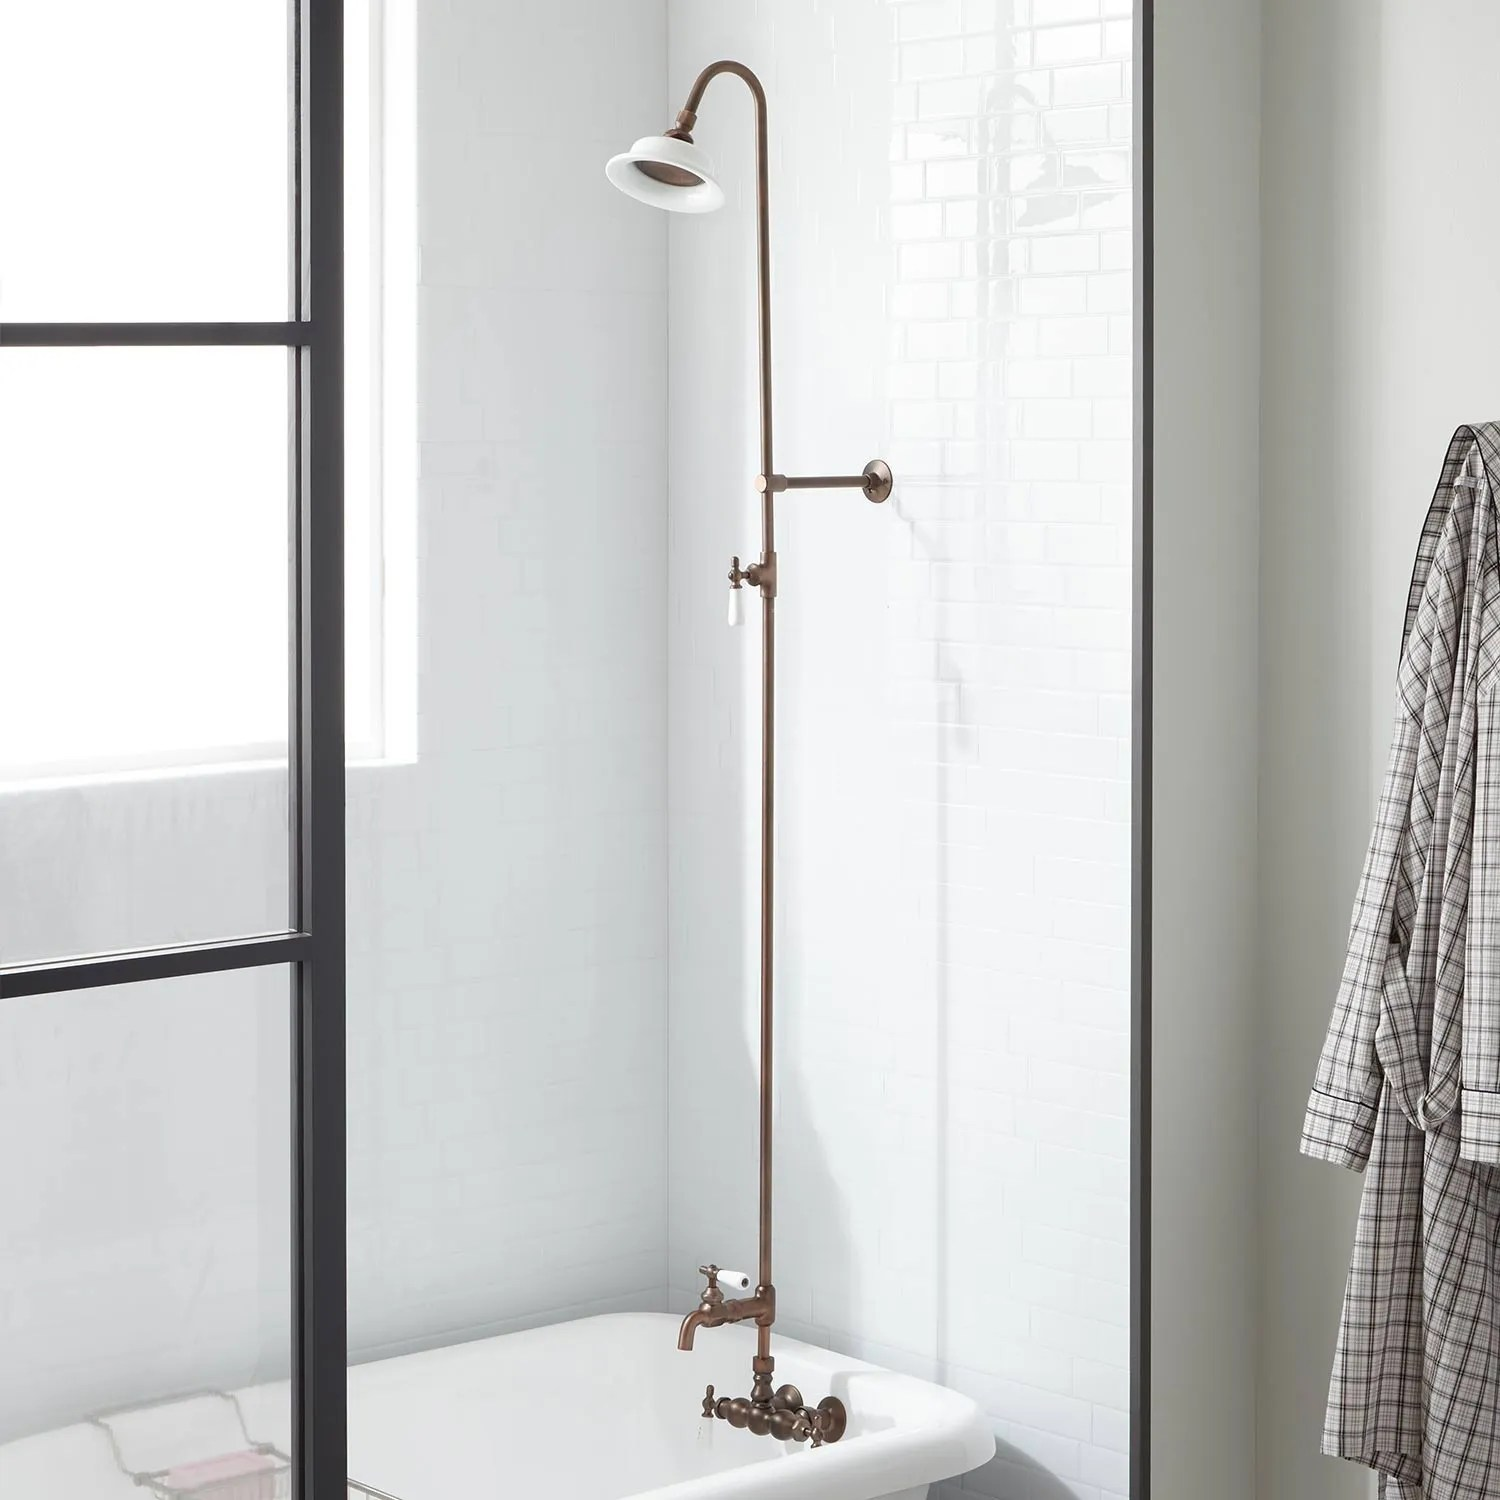 Wall Shower Set With Exposed Pipe Riser And Tub Filler Bathroom